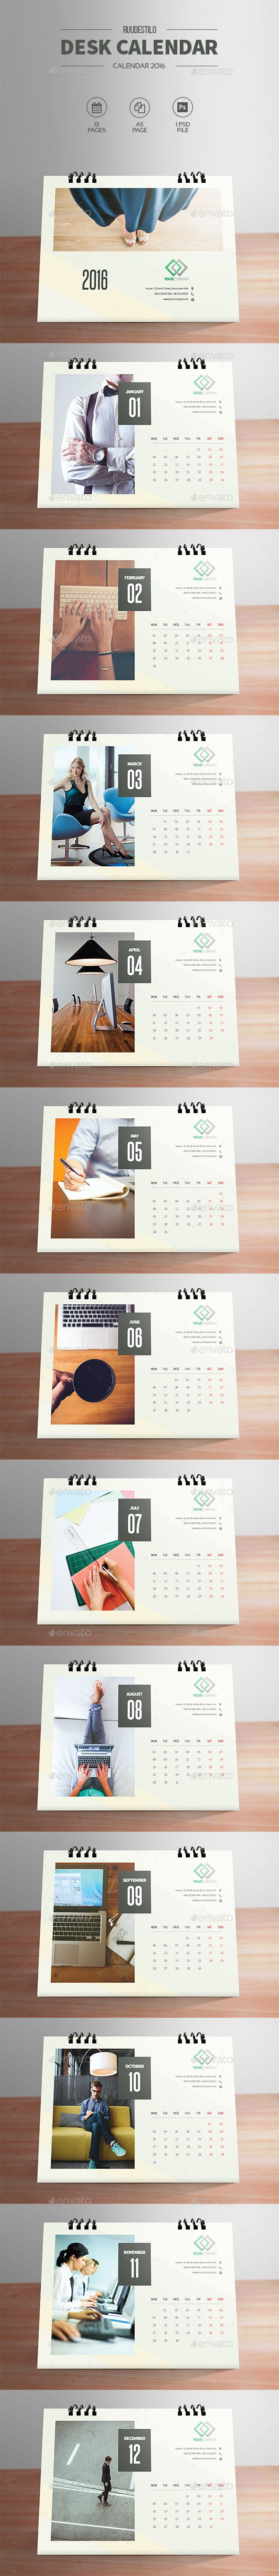 Clean Desktop Calendar 2016 Template PSD #design Download: http://graphicriver.net/item/clean-desktop-calendar-2016/13971717?ref=ksioks